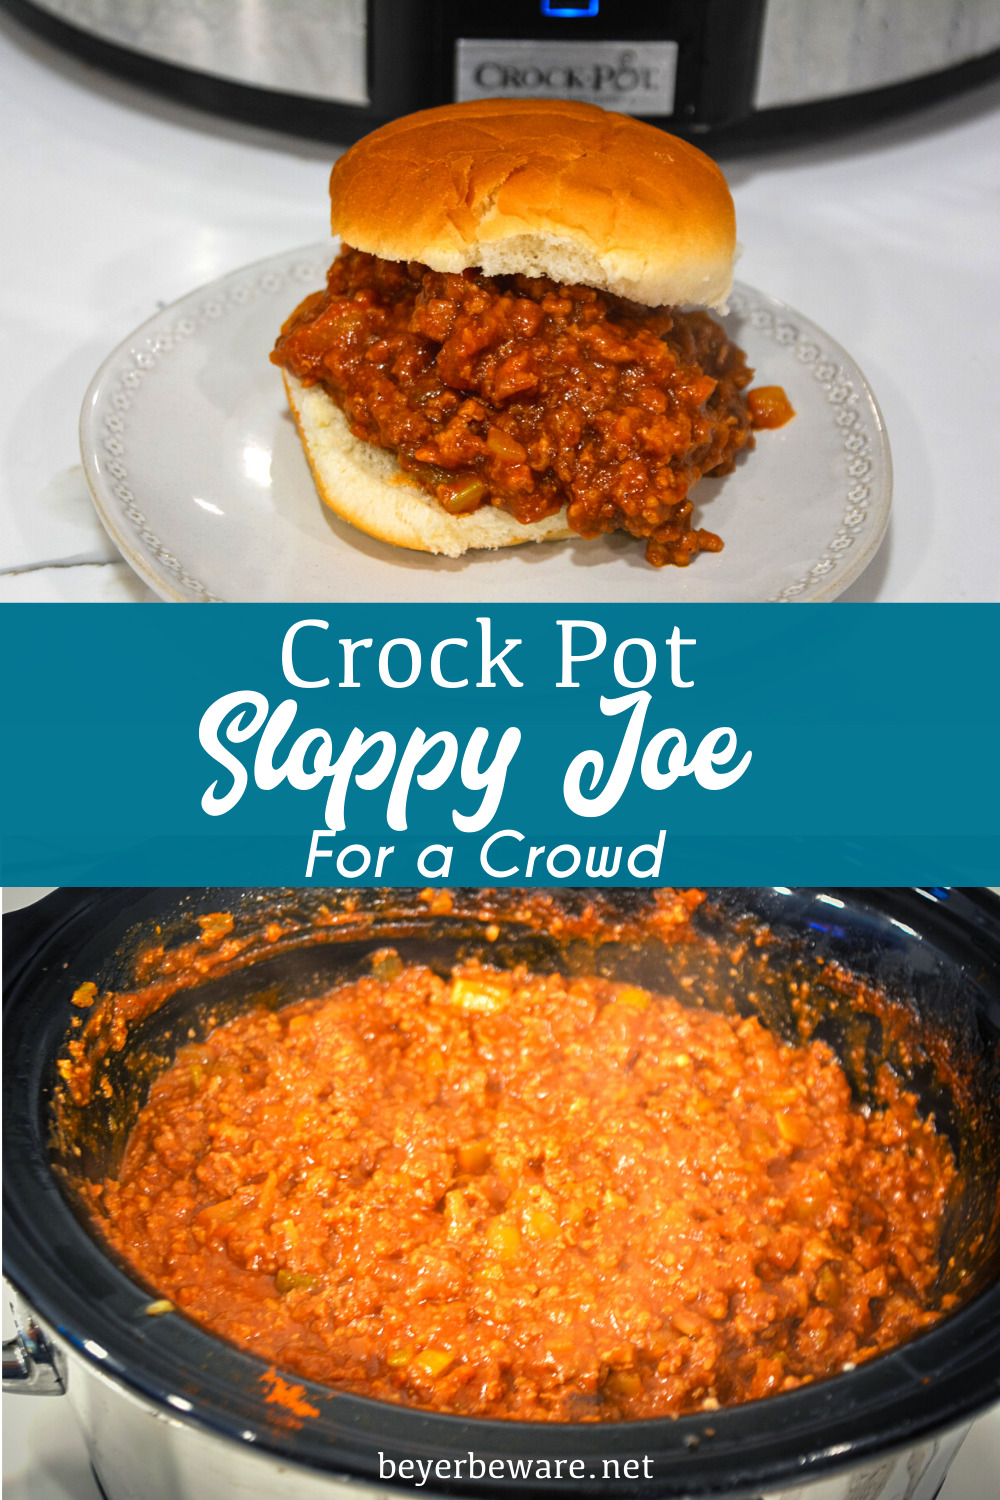 Crock pot sloppy joes for a crowd is a large batch of sloppy joes recipe when you are looking for a recipe to feed a bunch of hungry people.